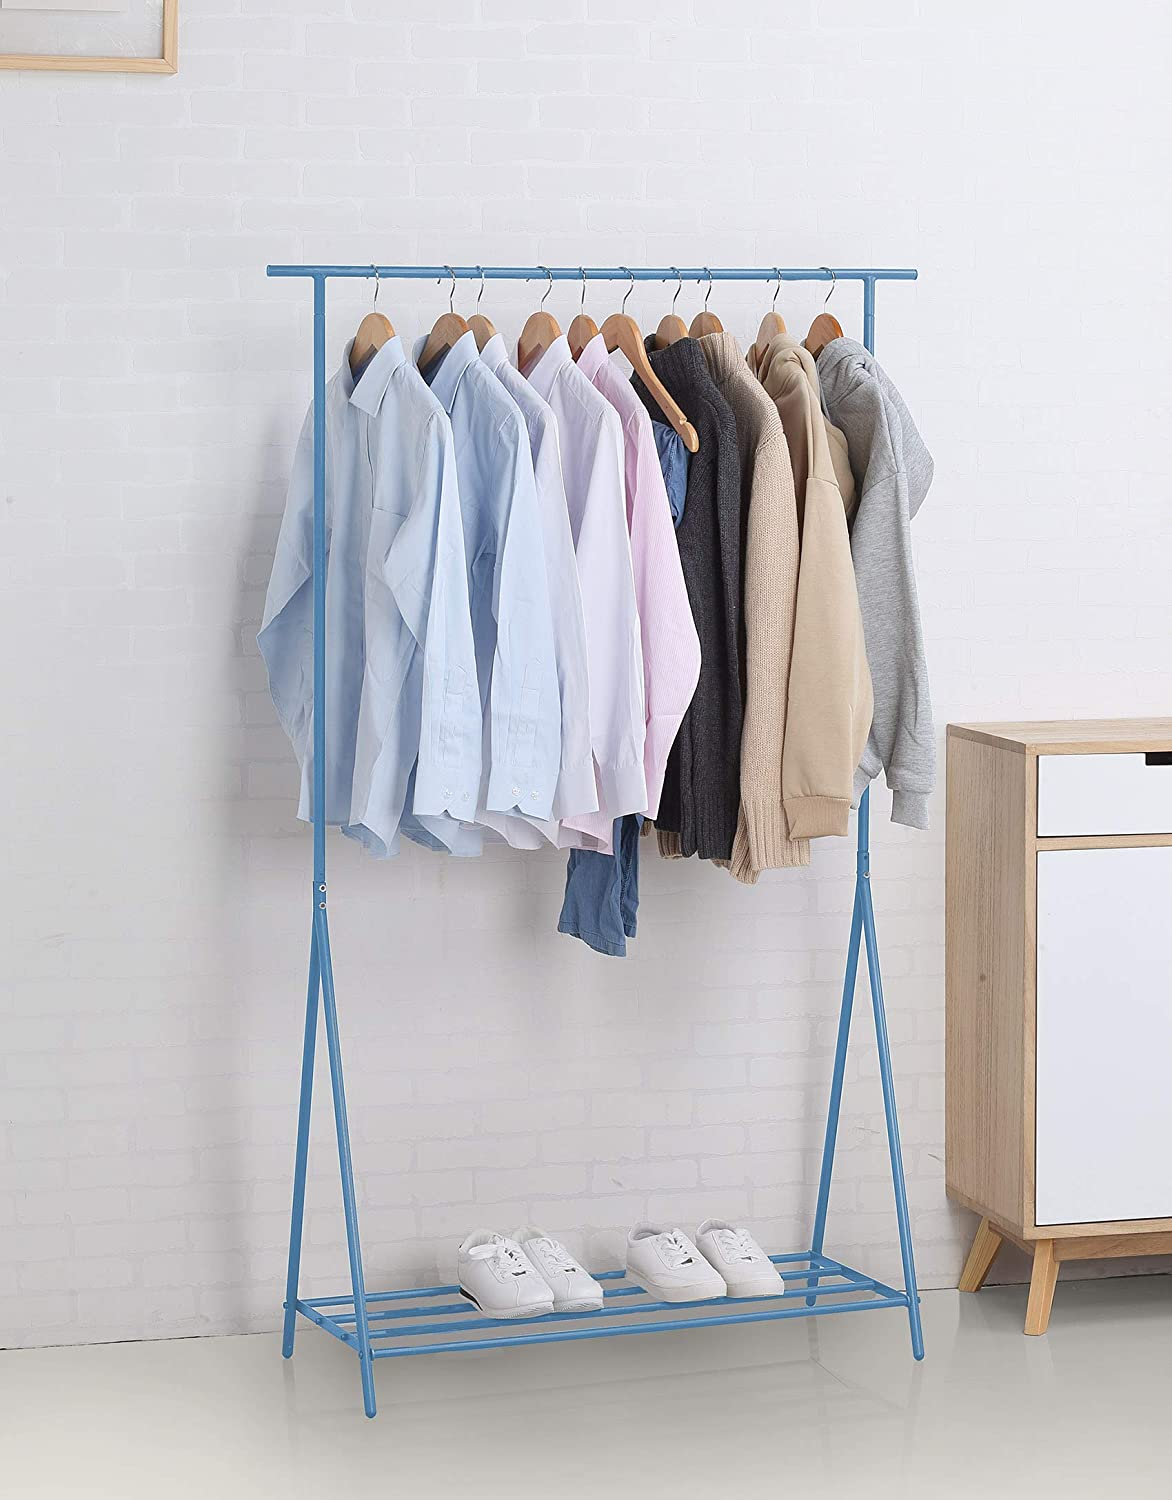 Single Rod L White NEUN WELTEN Caecias Clothing Coat Rack Hanger with an Industrial and Simple Expression Tall